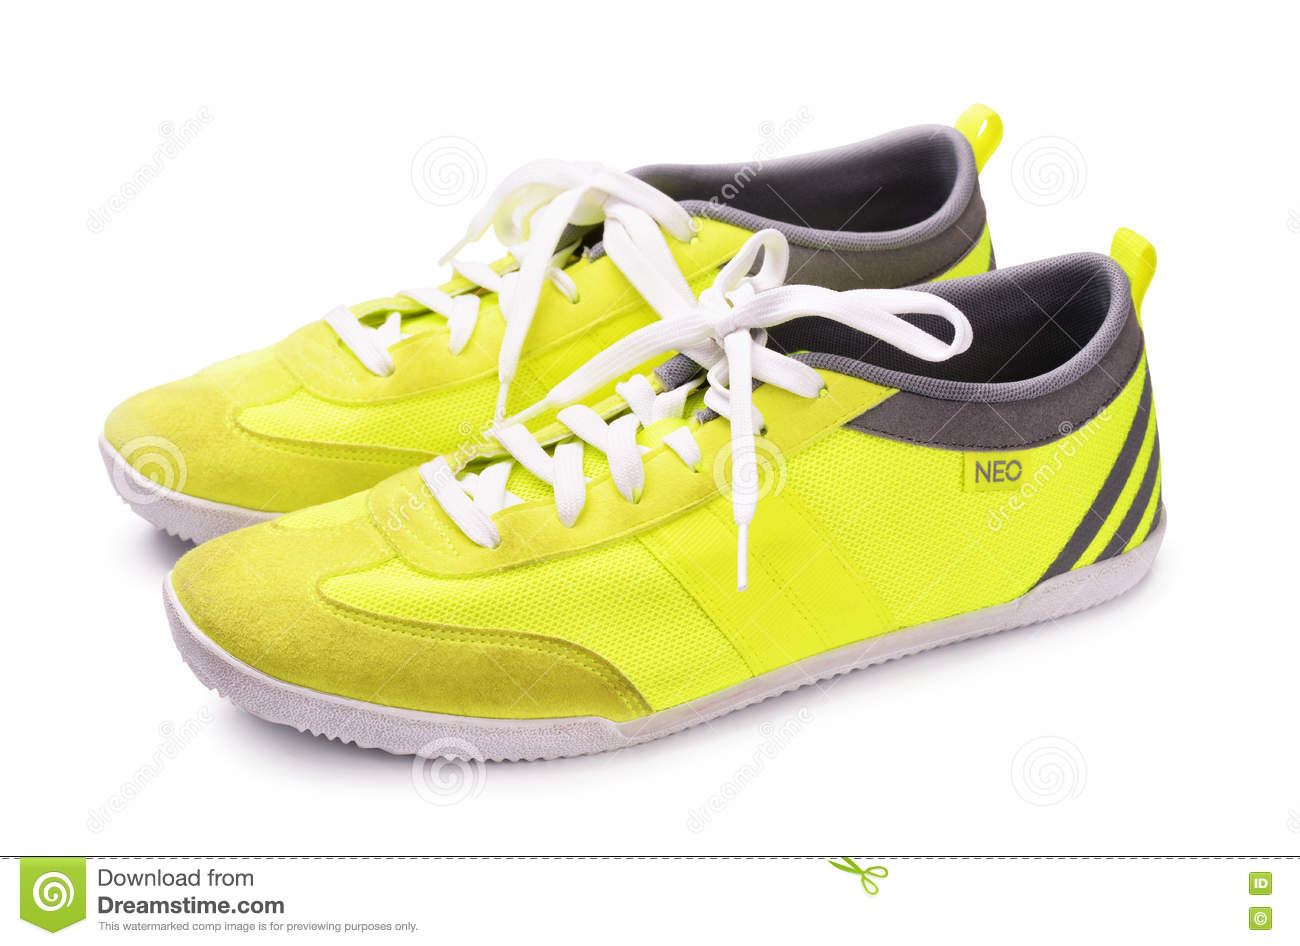 reputable site b462d 44aef ... aliexpress yellow adidas neo shoes 53ef8 cc6a6